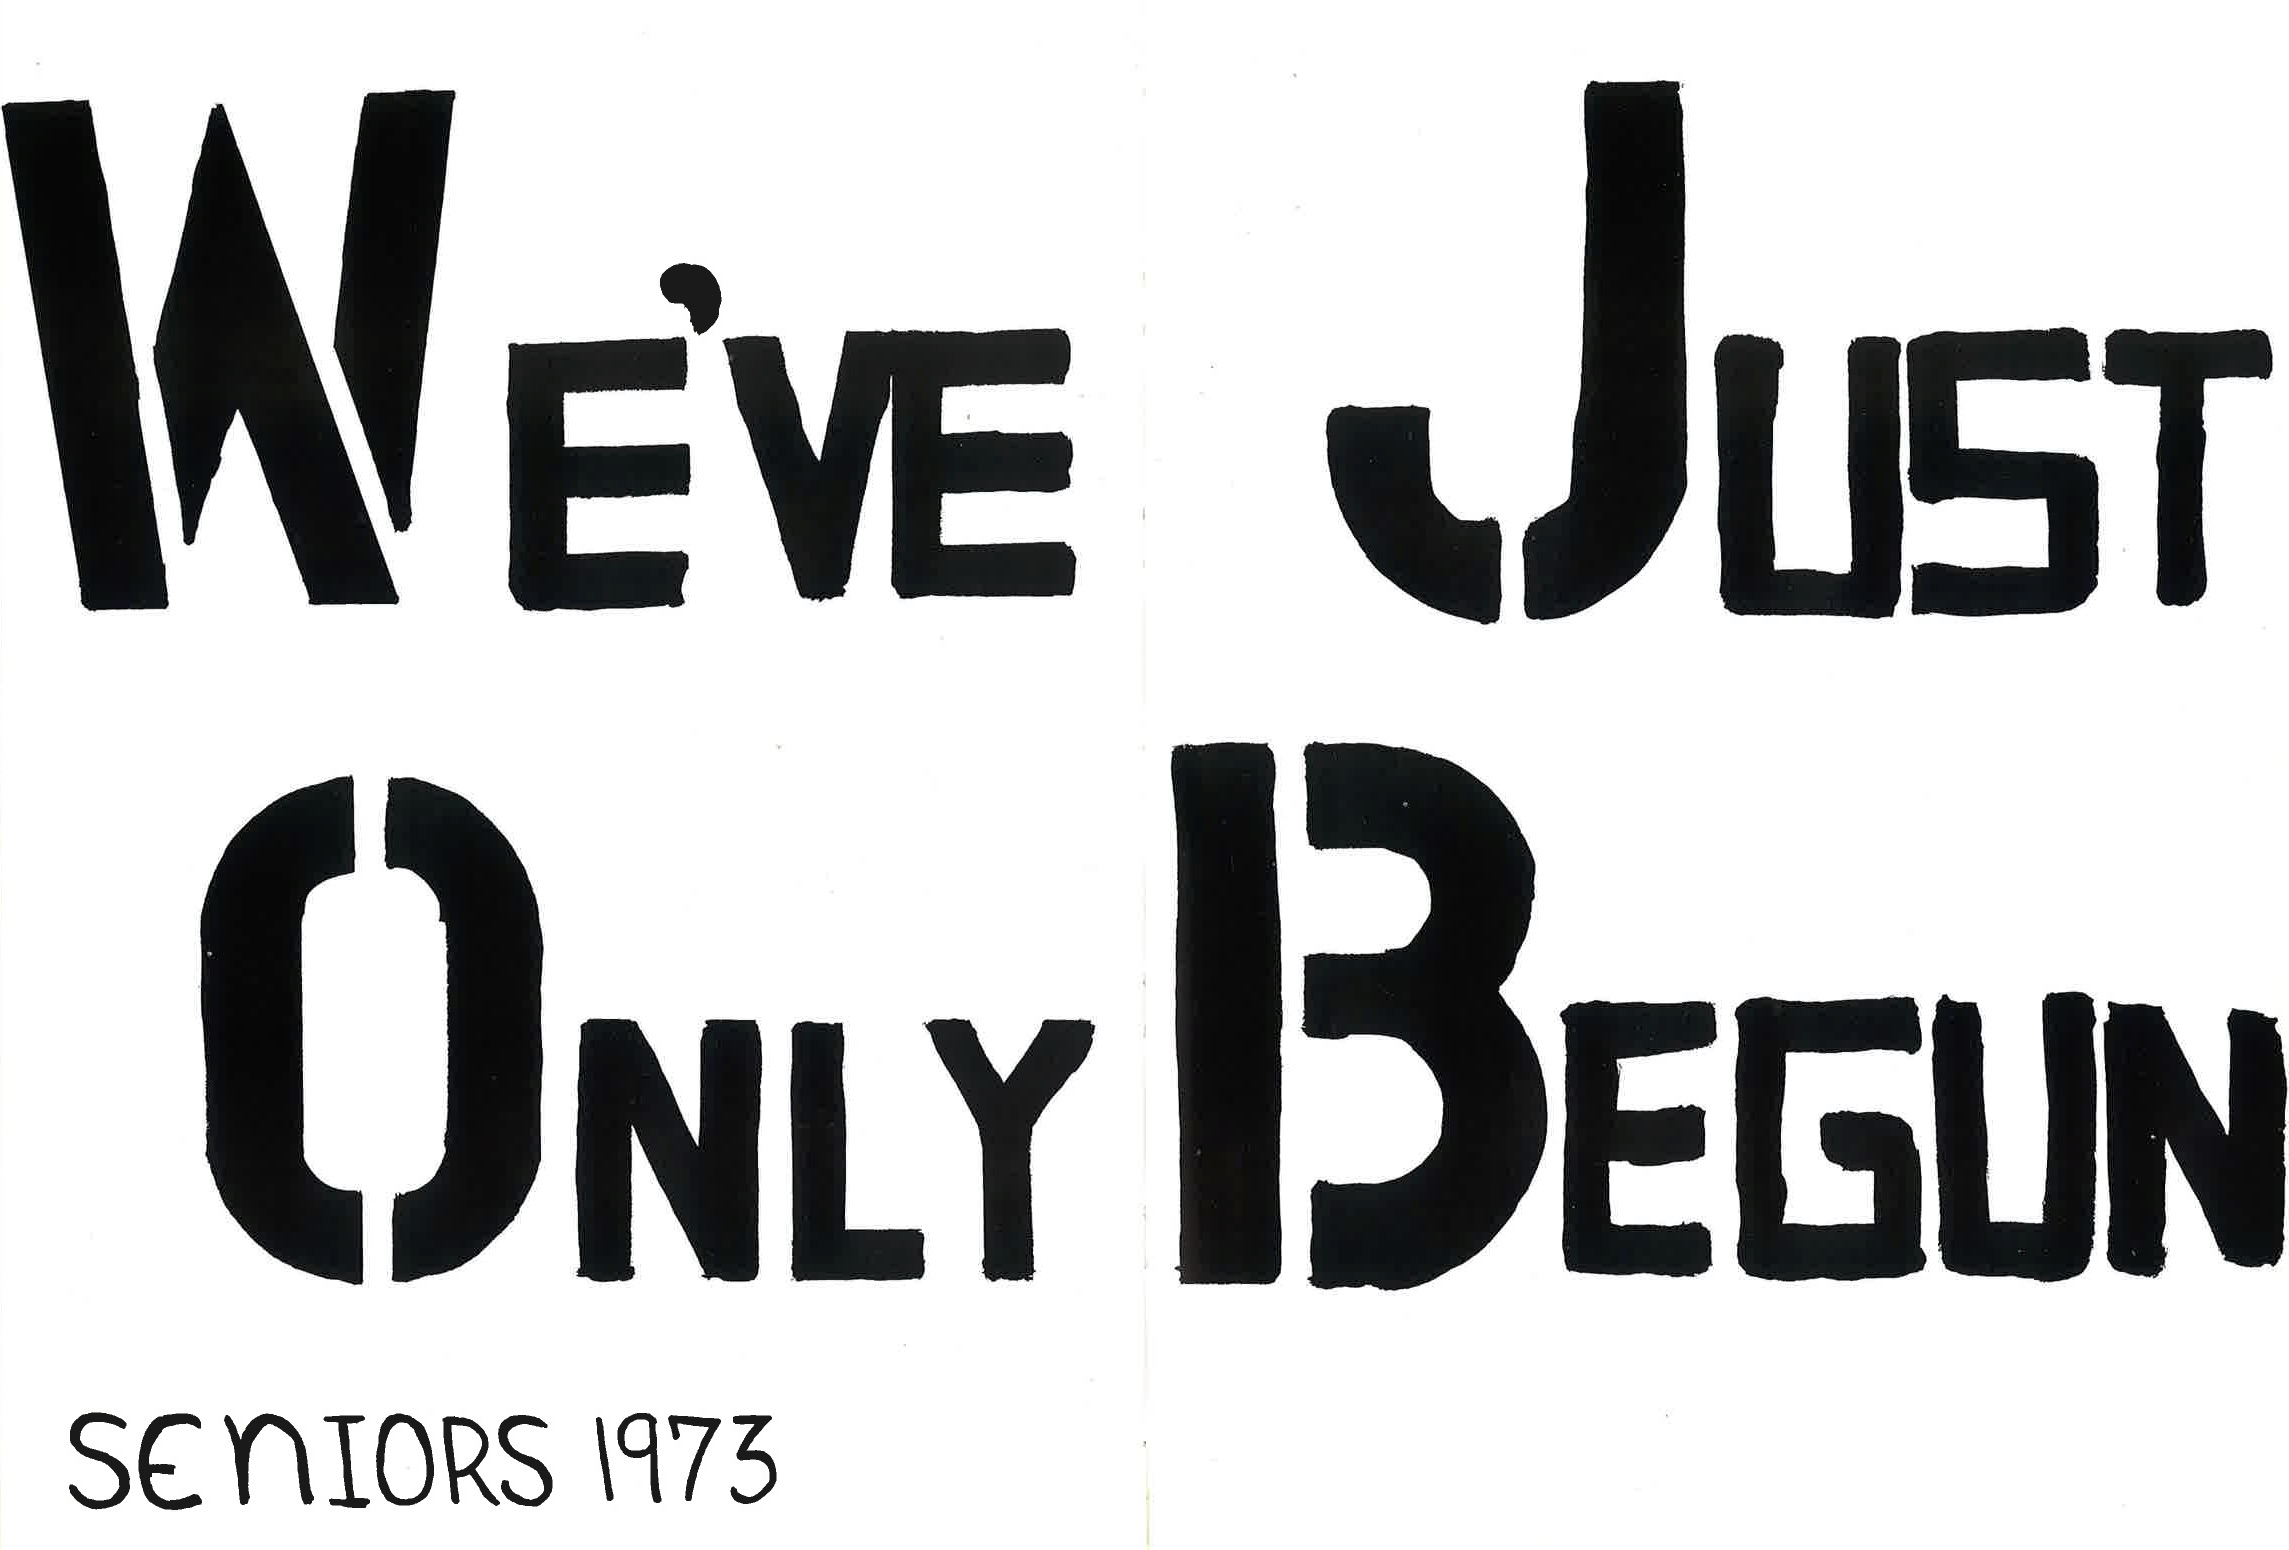 1973_Yearbook_58-59.jpg